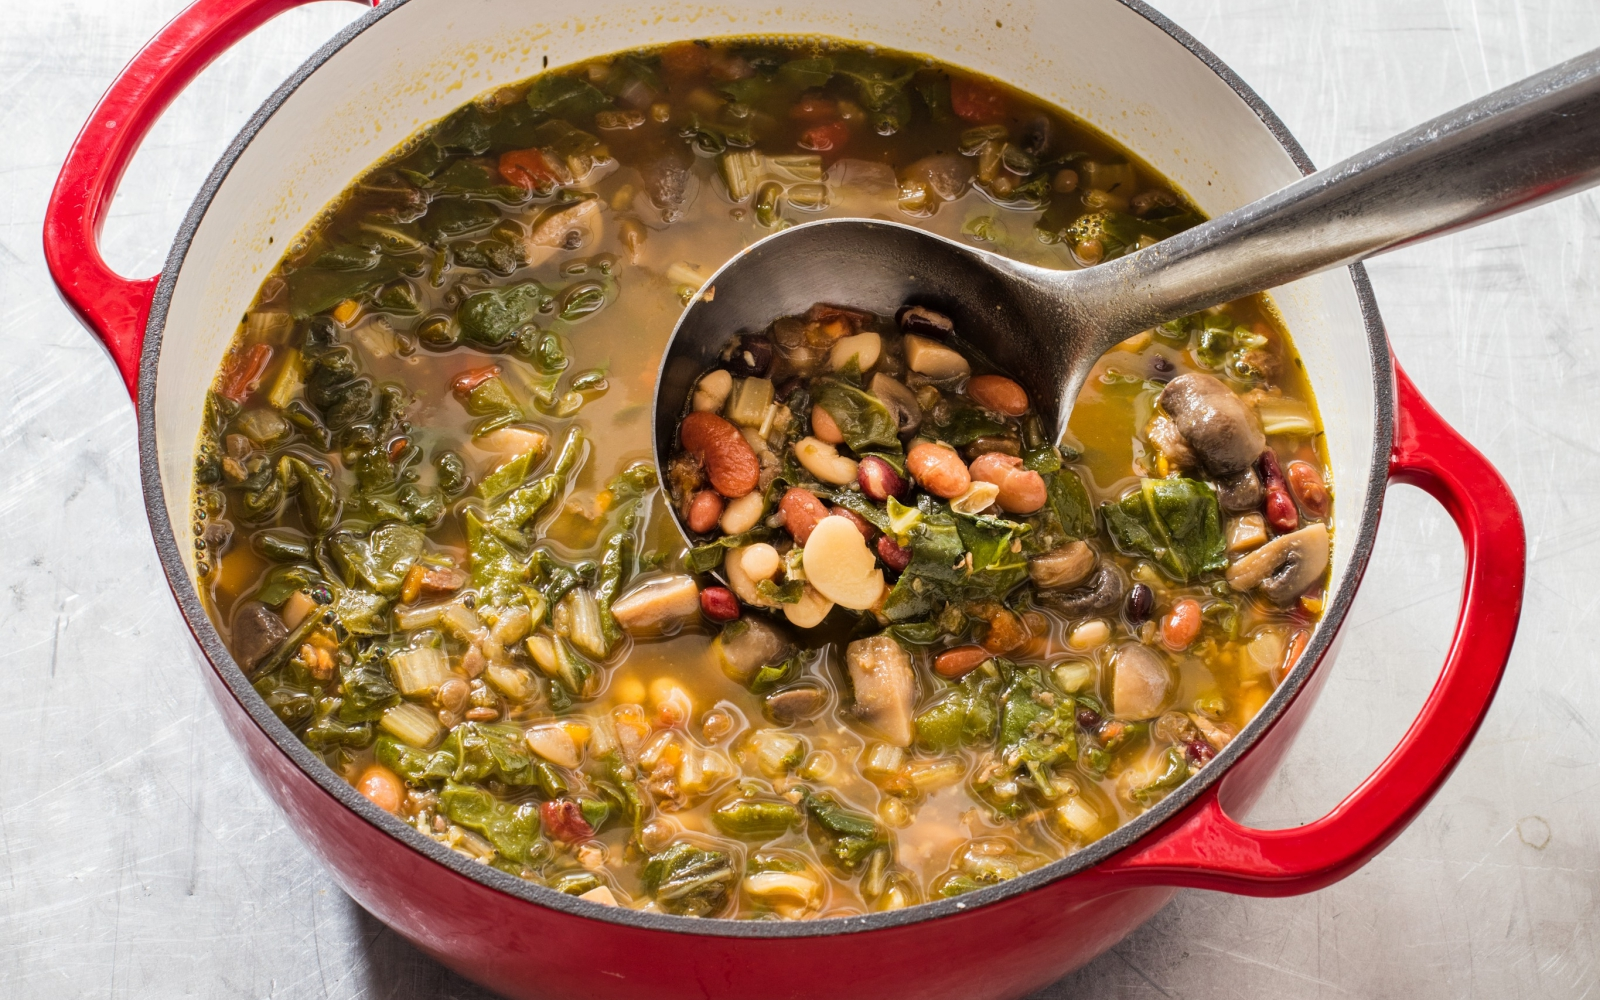 Vegan Heart 15 Minute Vegetable Soup